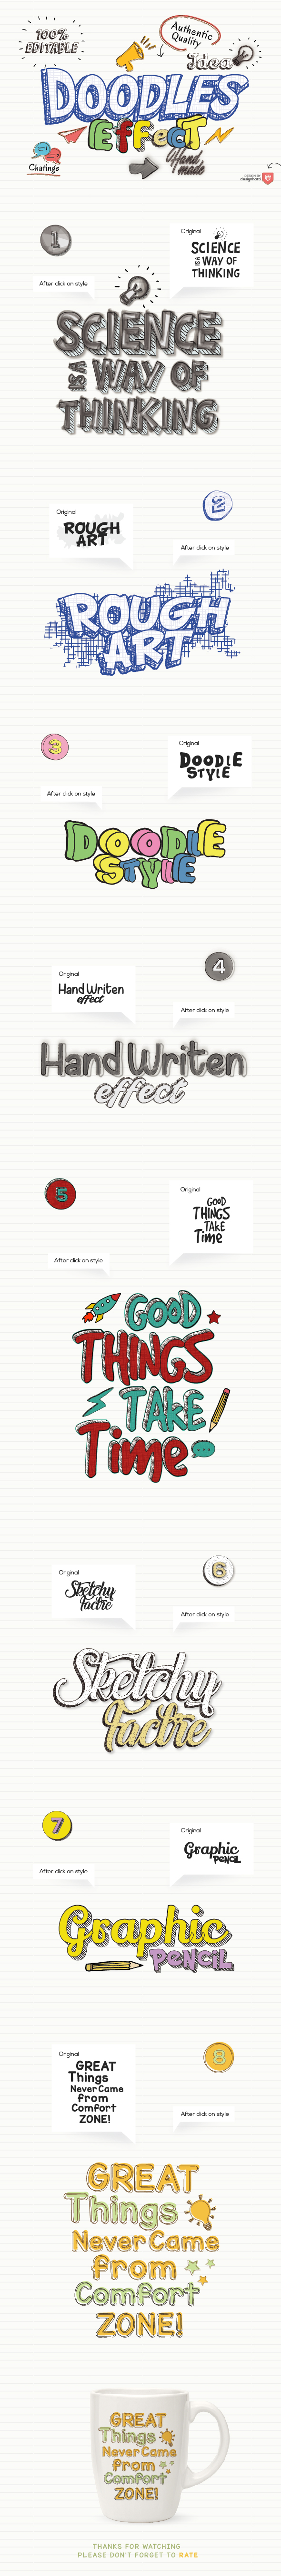 Doodles Text Effect - Styles Illustrator